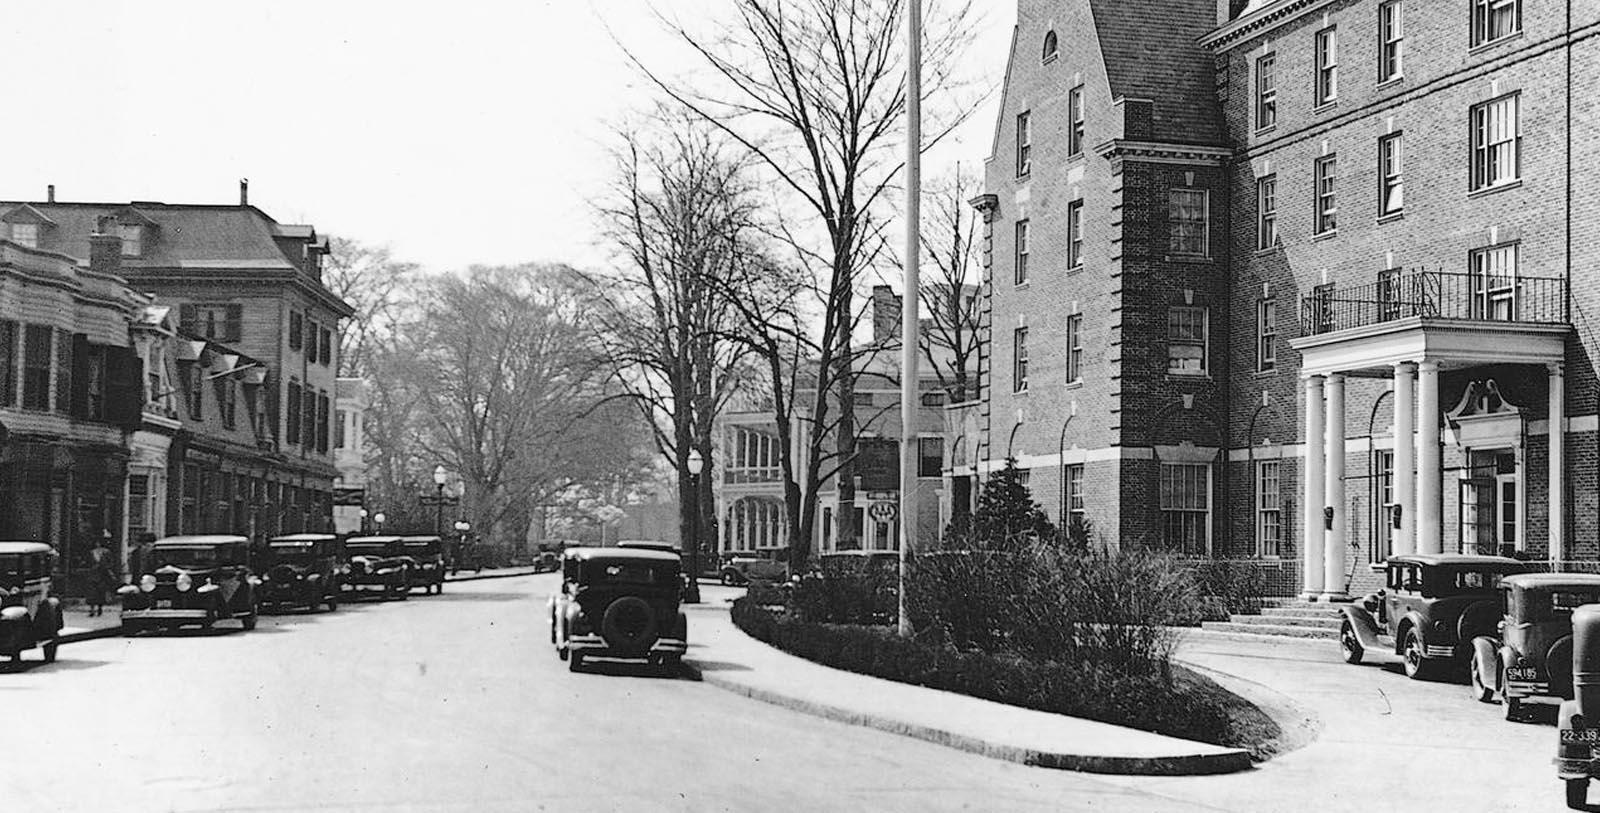 Historic Image of Exterior of The Hotel Viking, 1926, Member of Historic Hotels of America, in Newport, Rhode Island, Discover